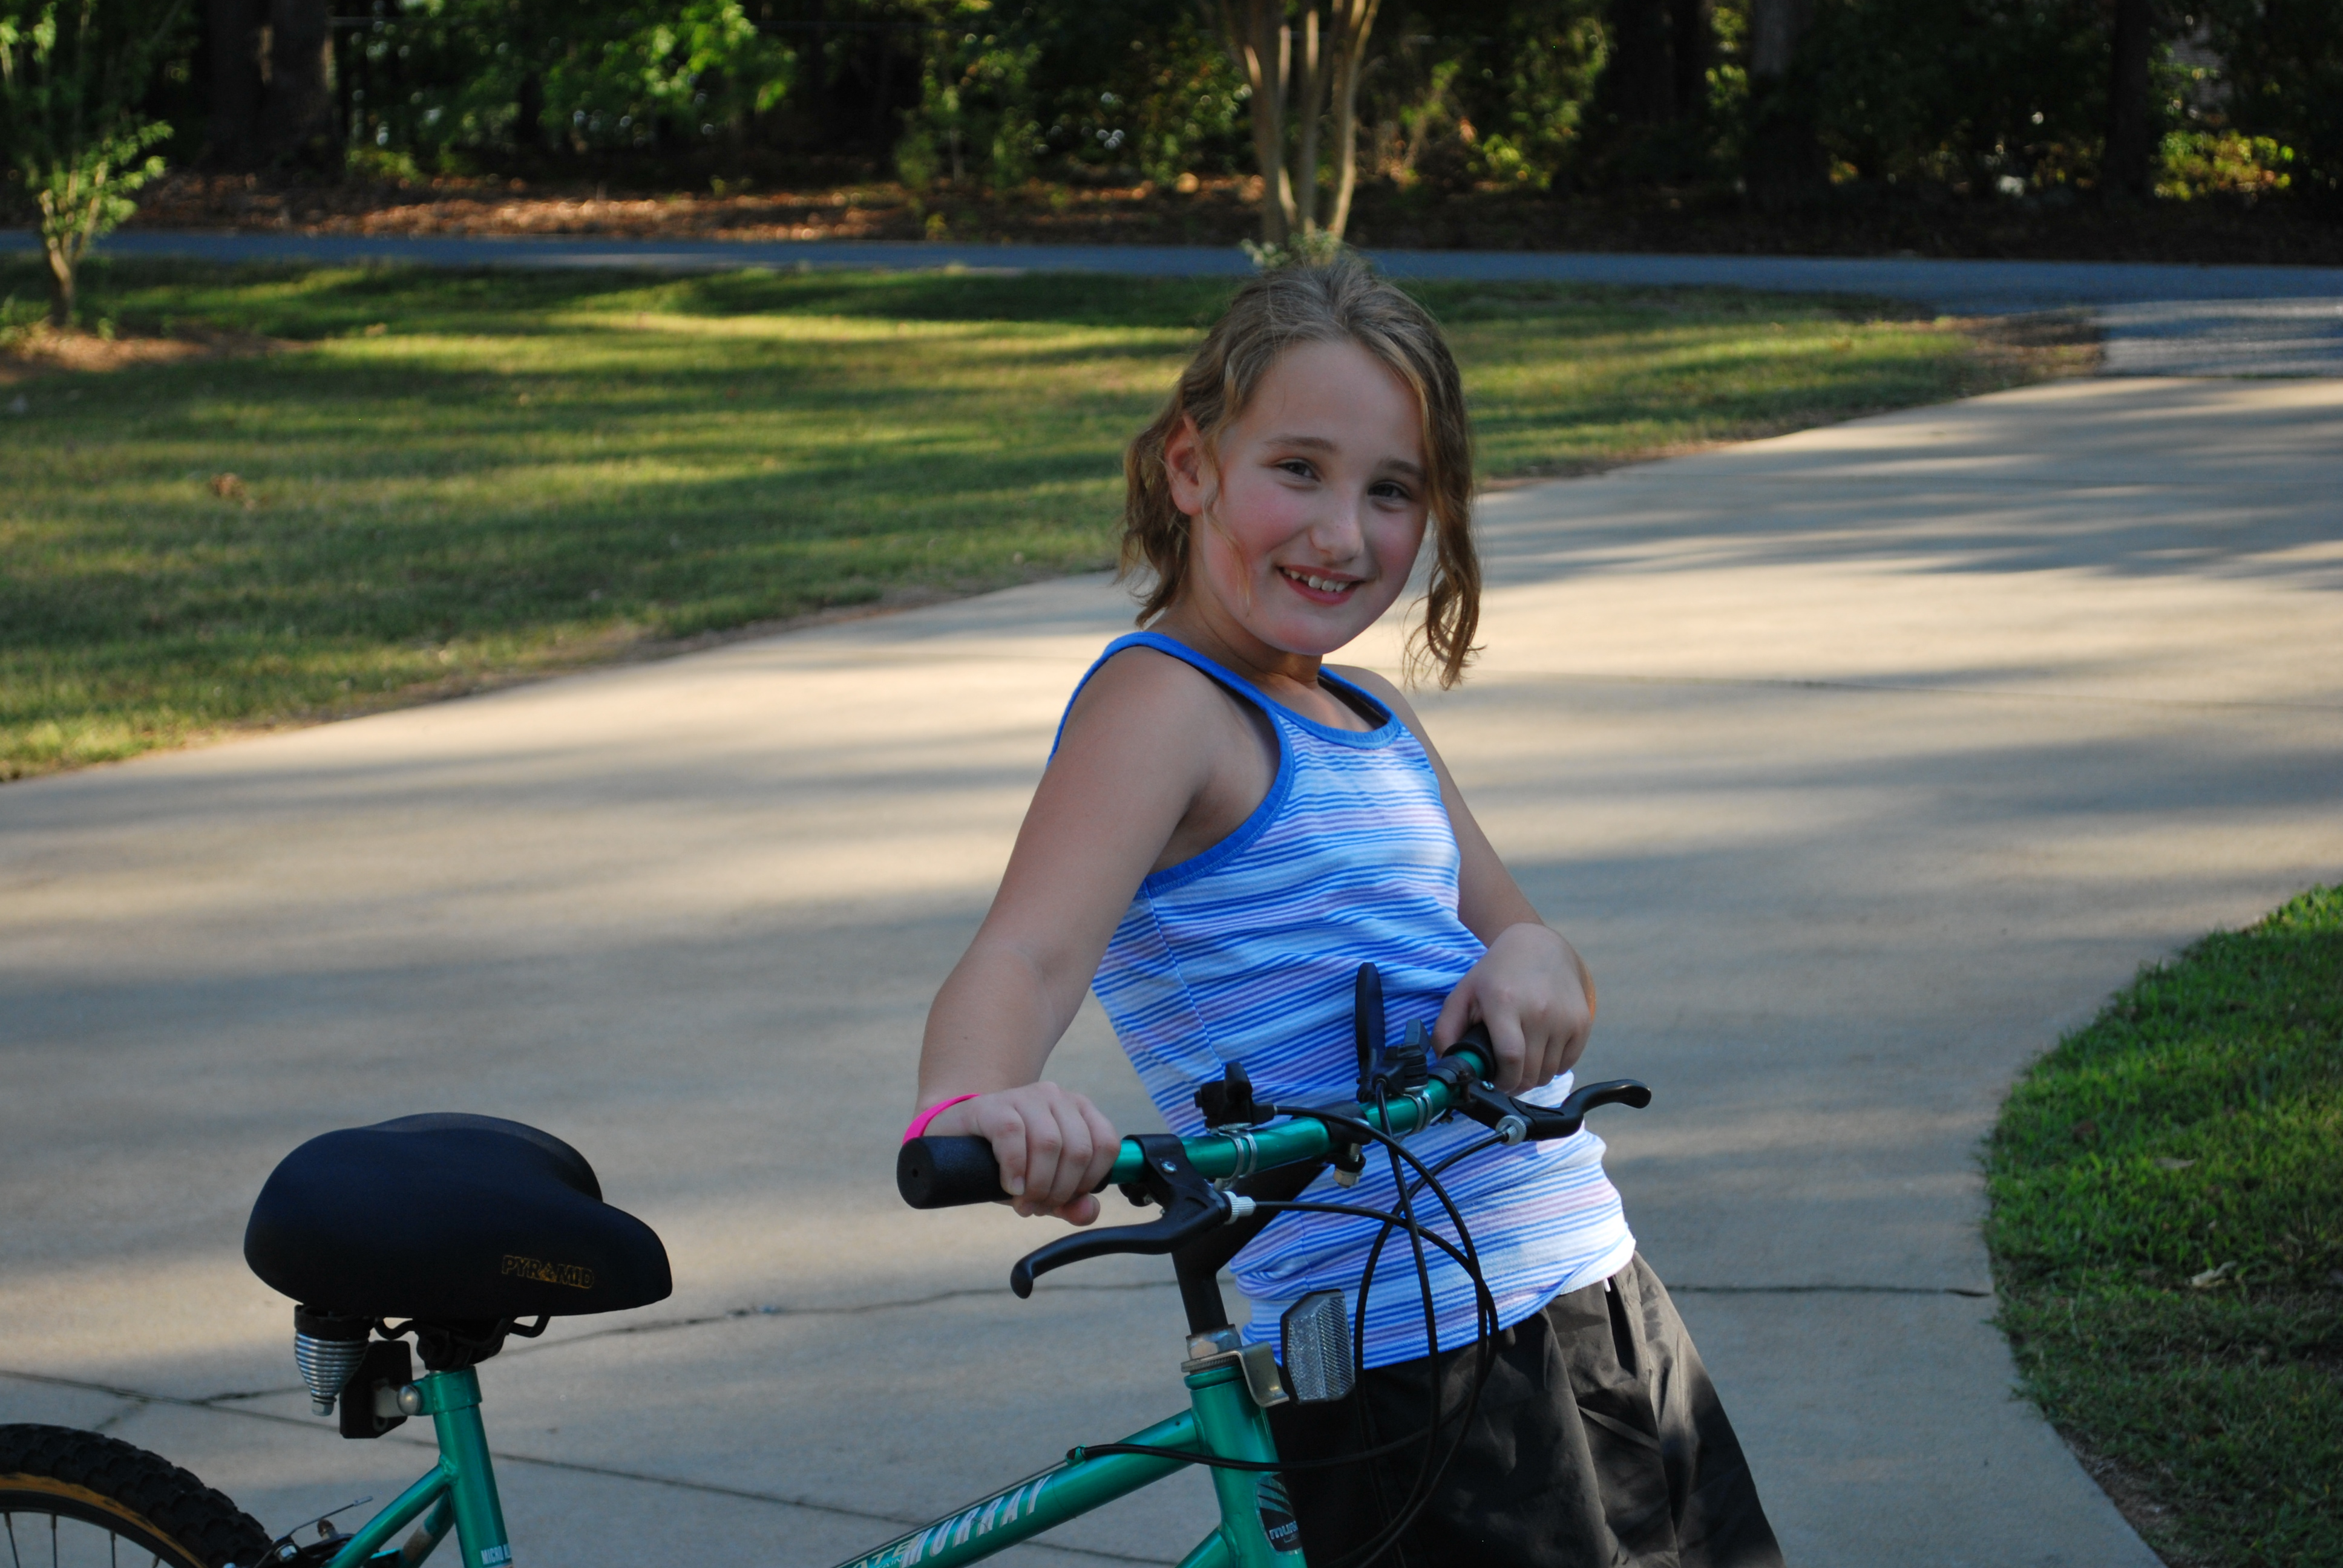 Riding A Bike Used To Be A Problem - Not Anymore!